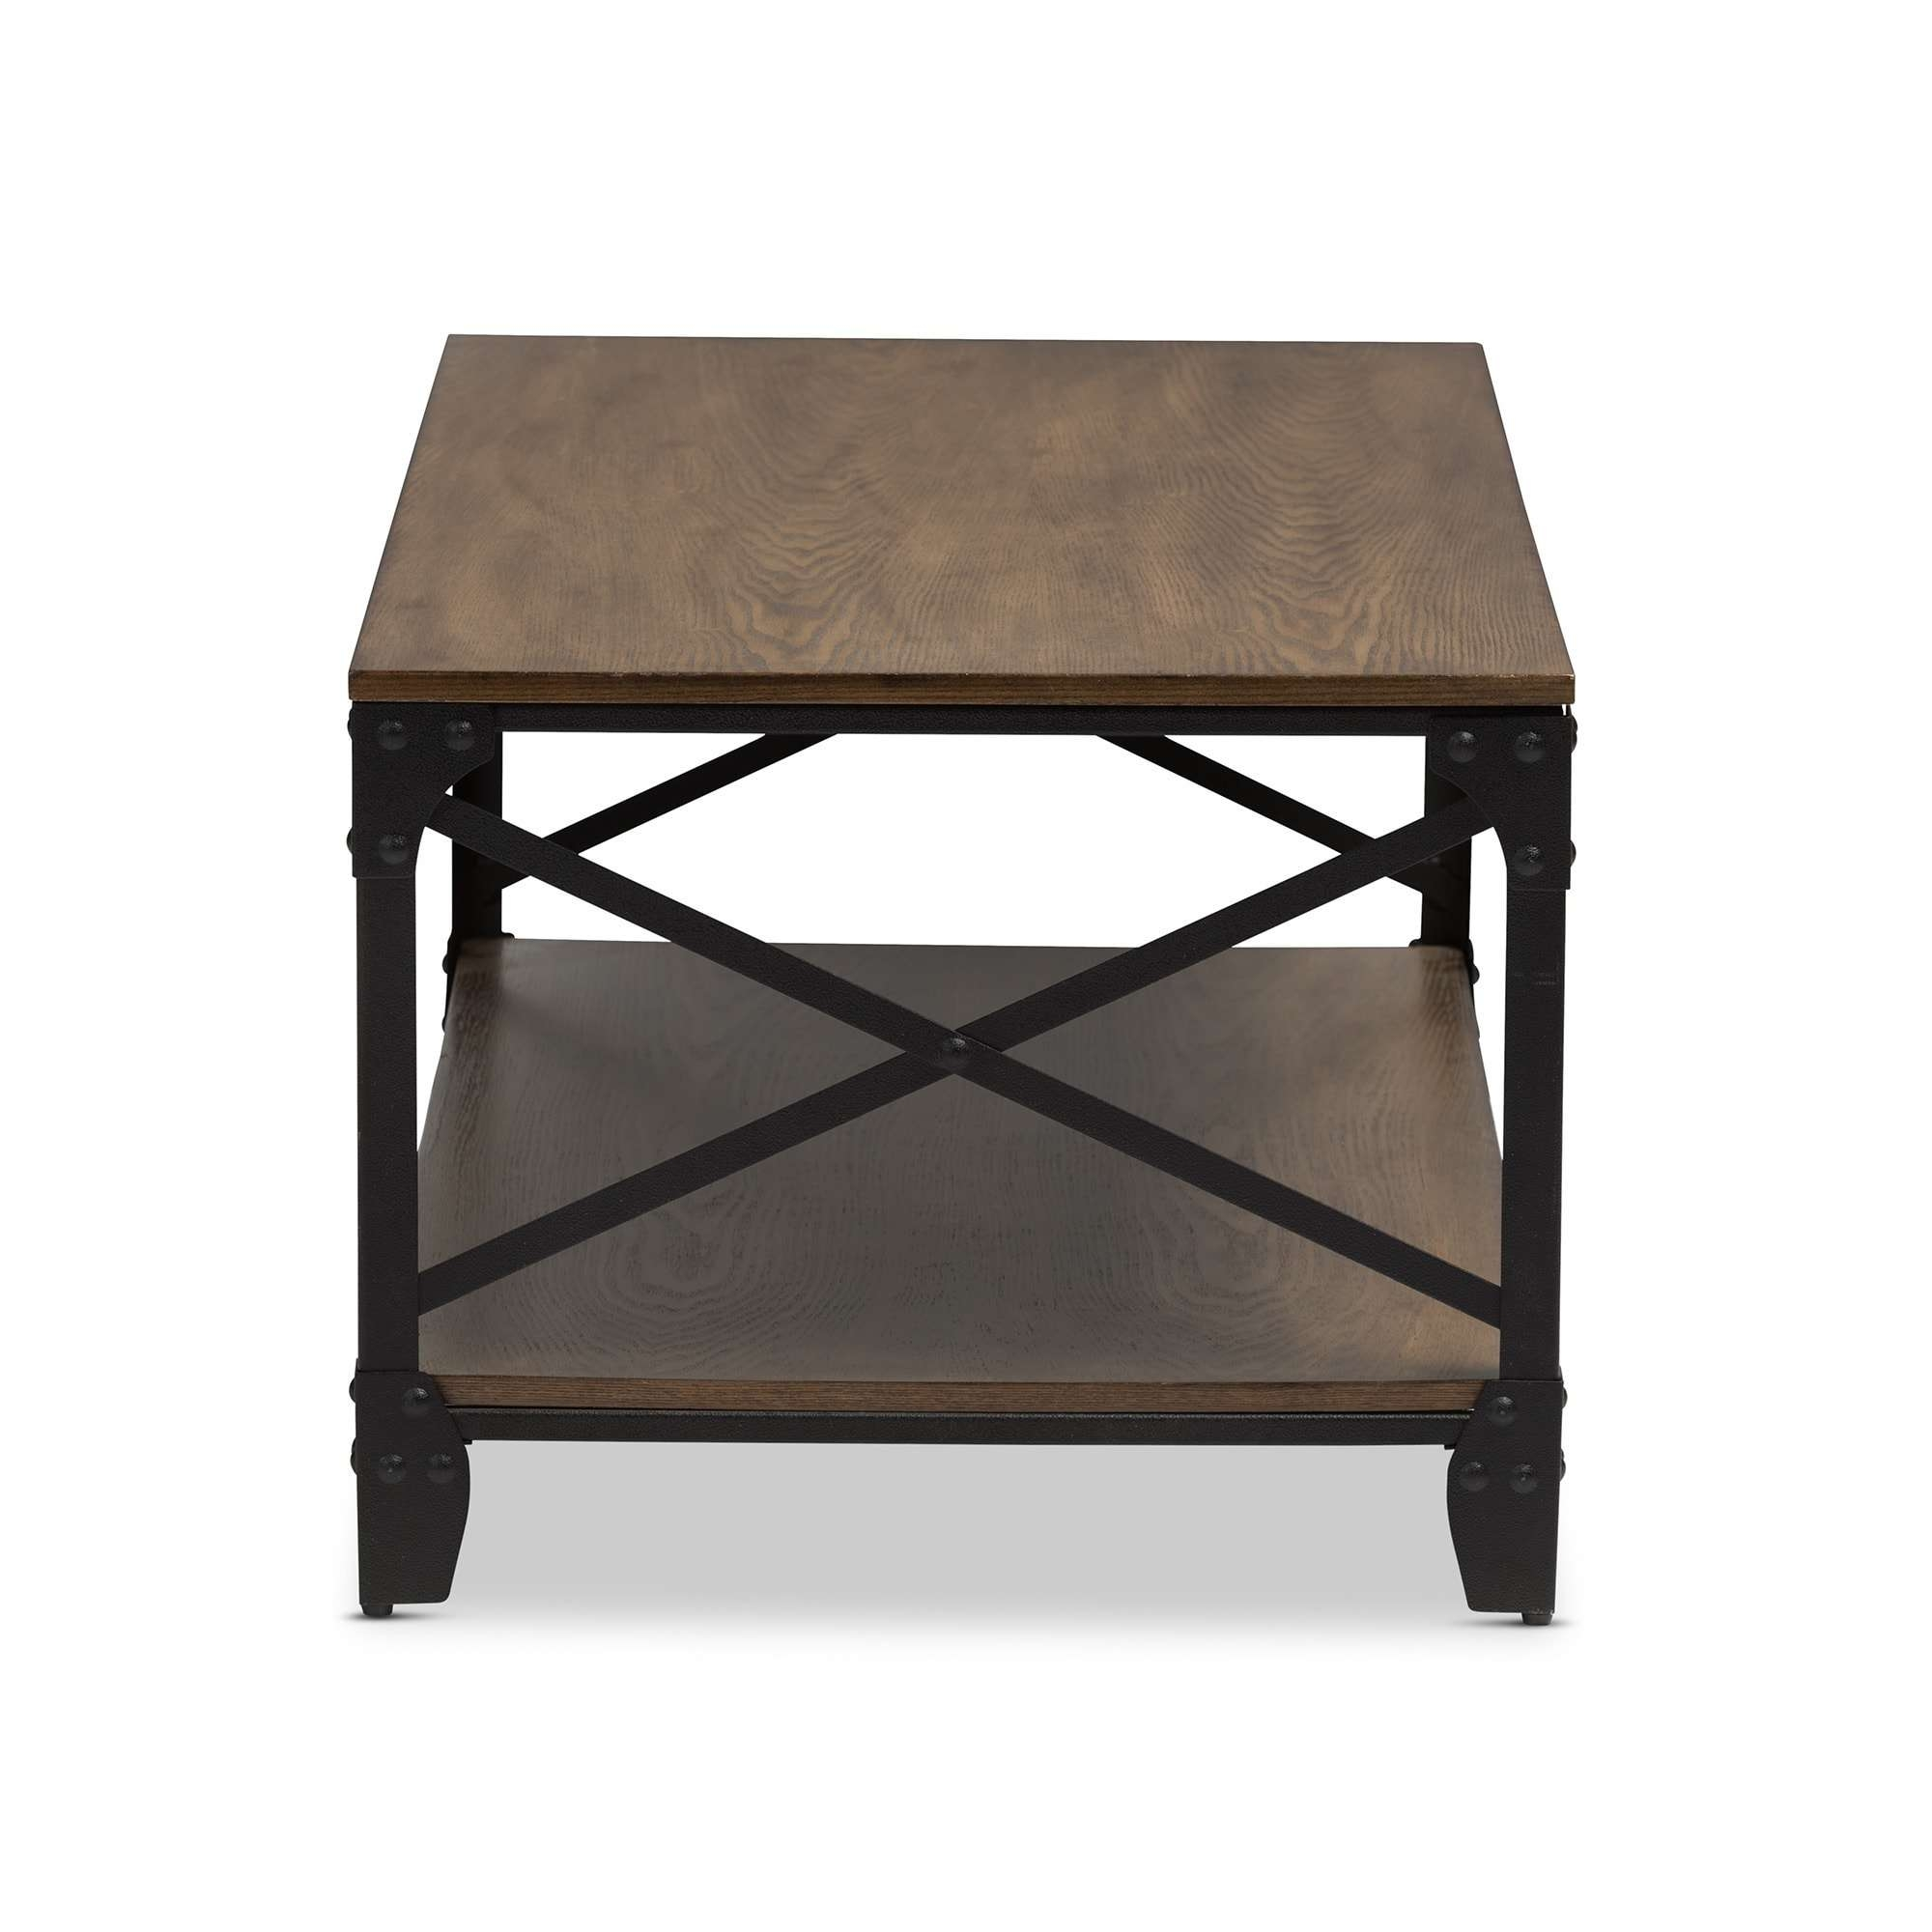 Widely Used Bronze Coffee Tables Inside Baxton Studio Greyson Industrial Bronze Coffee Table – Free (View 12 of 20)